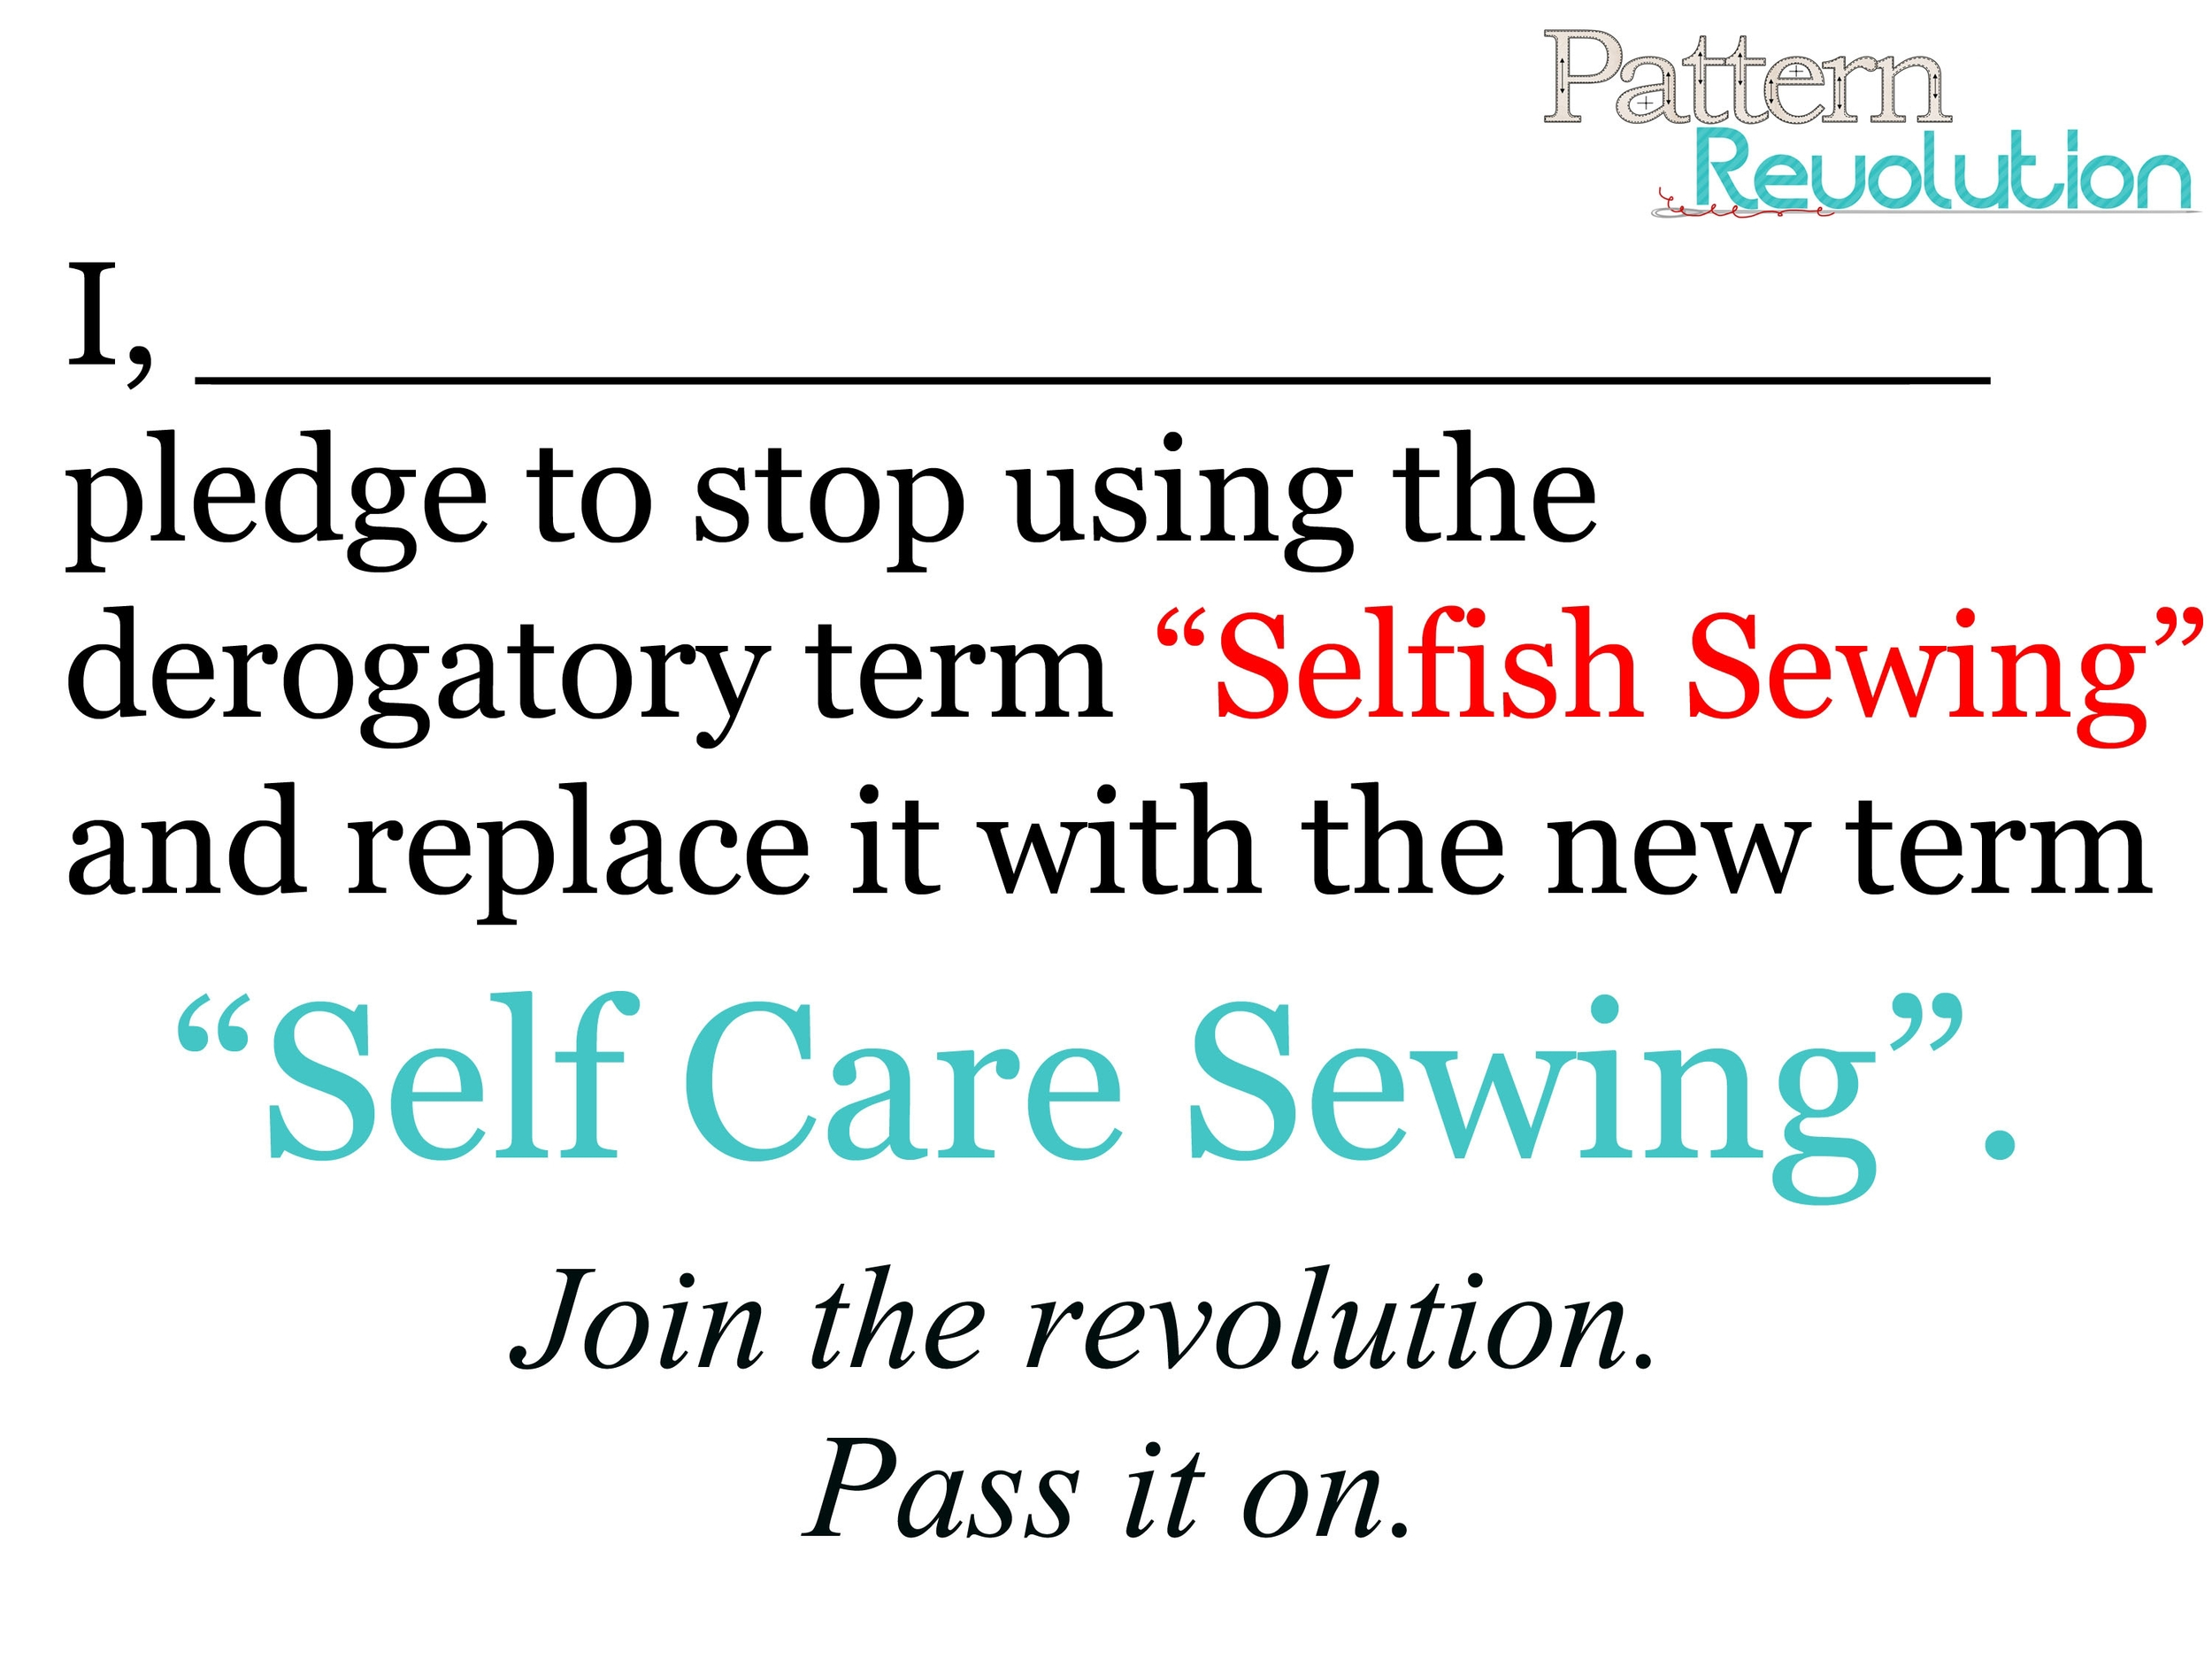 Take the Pledge! No more Selfish Sewing!